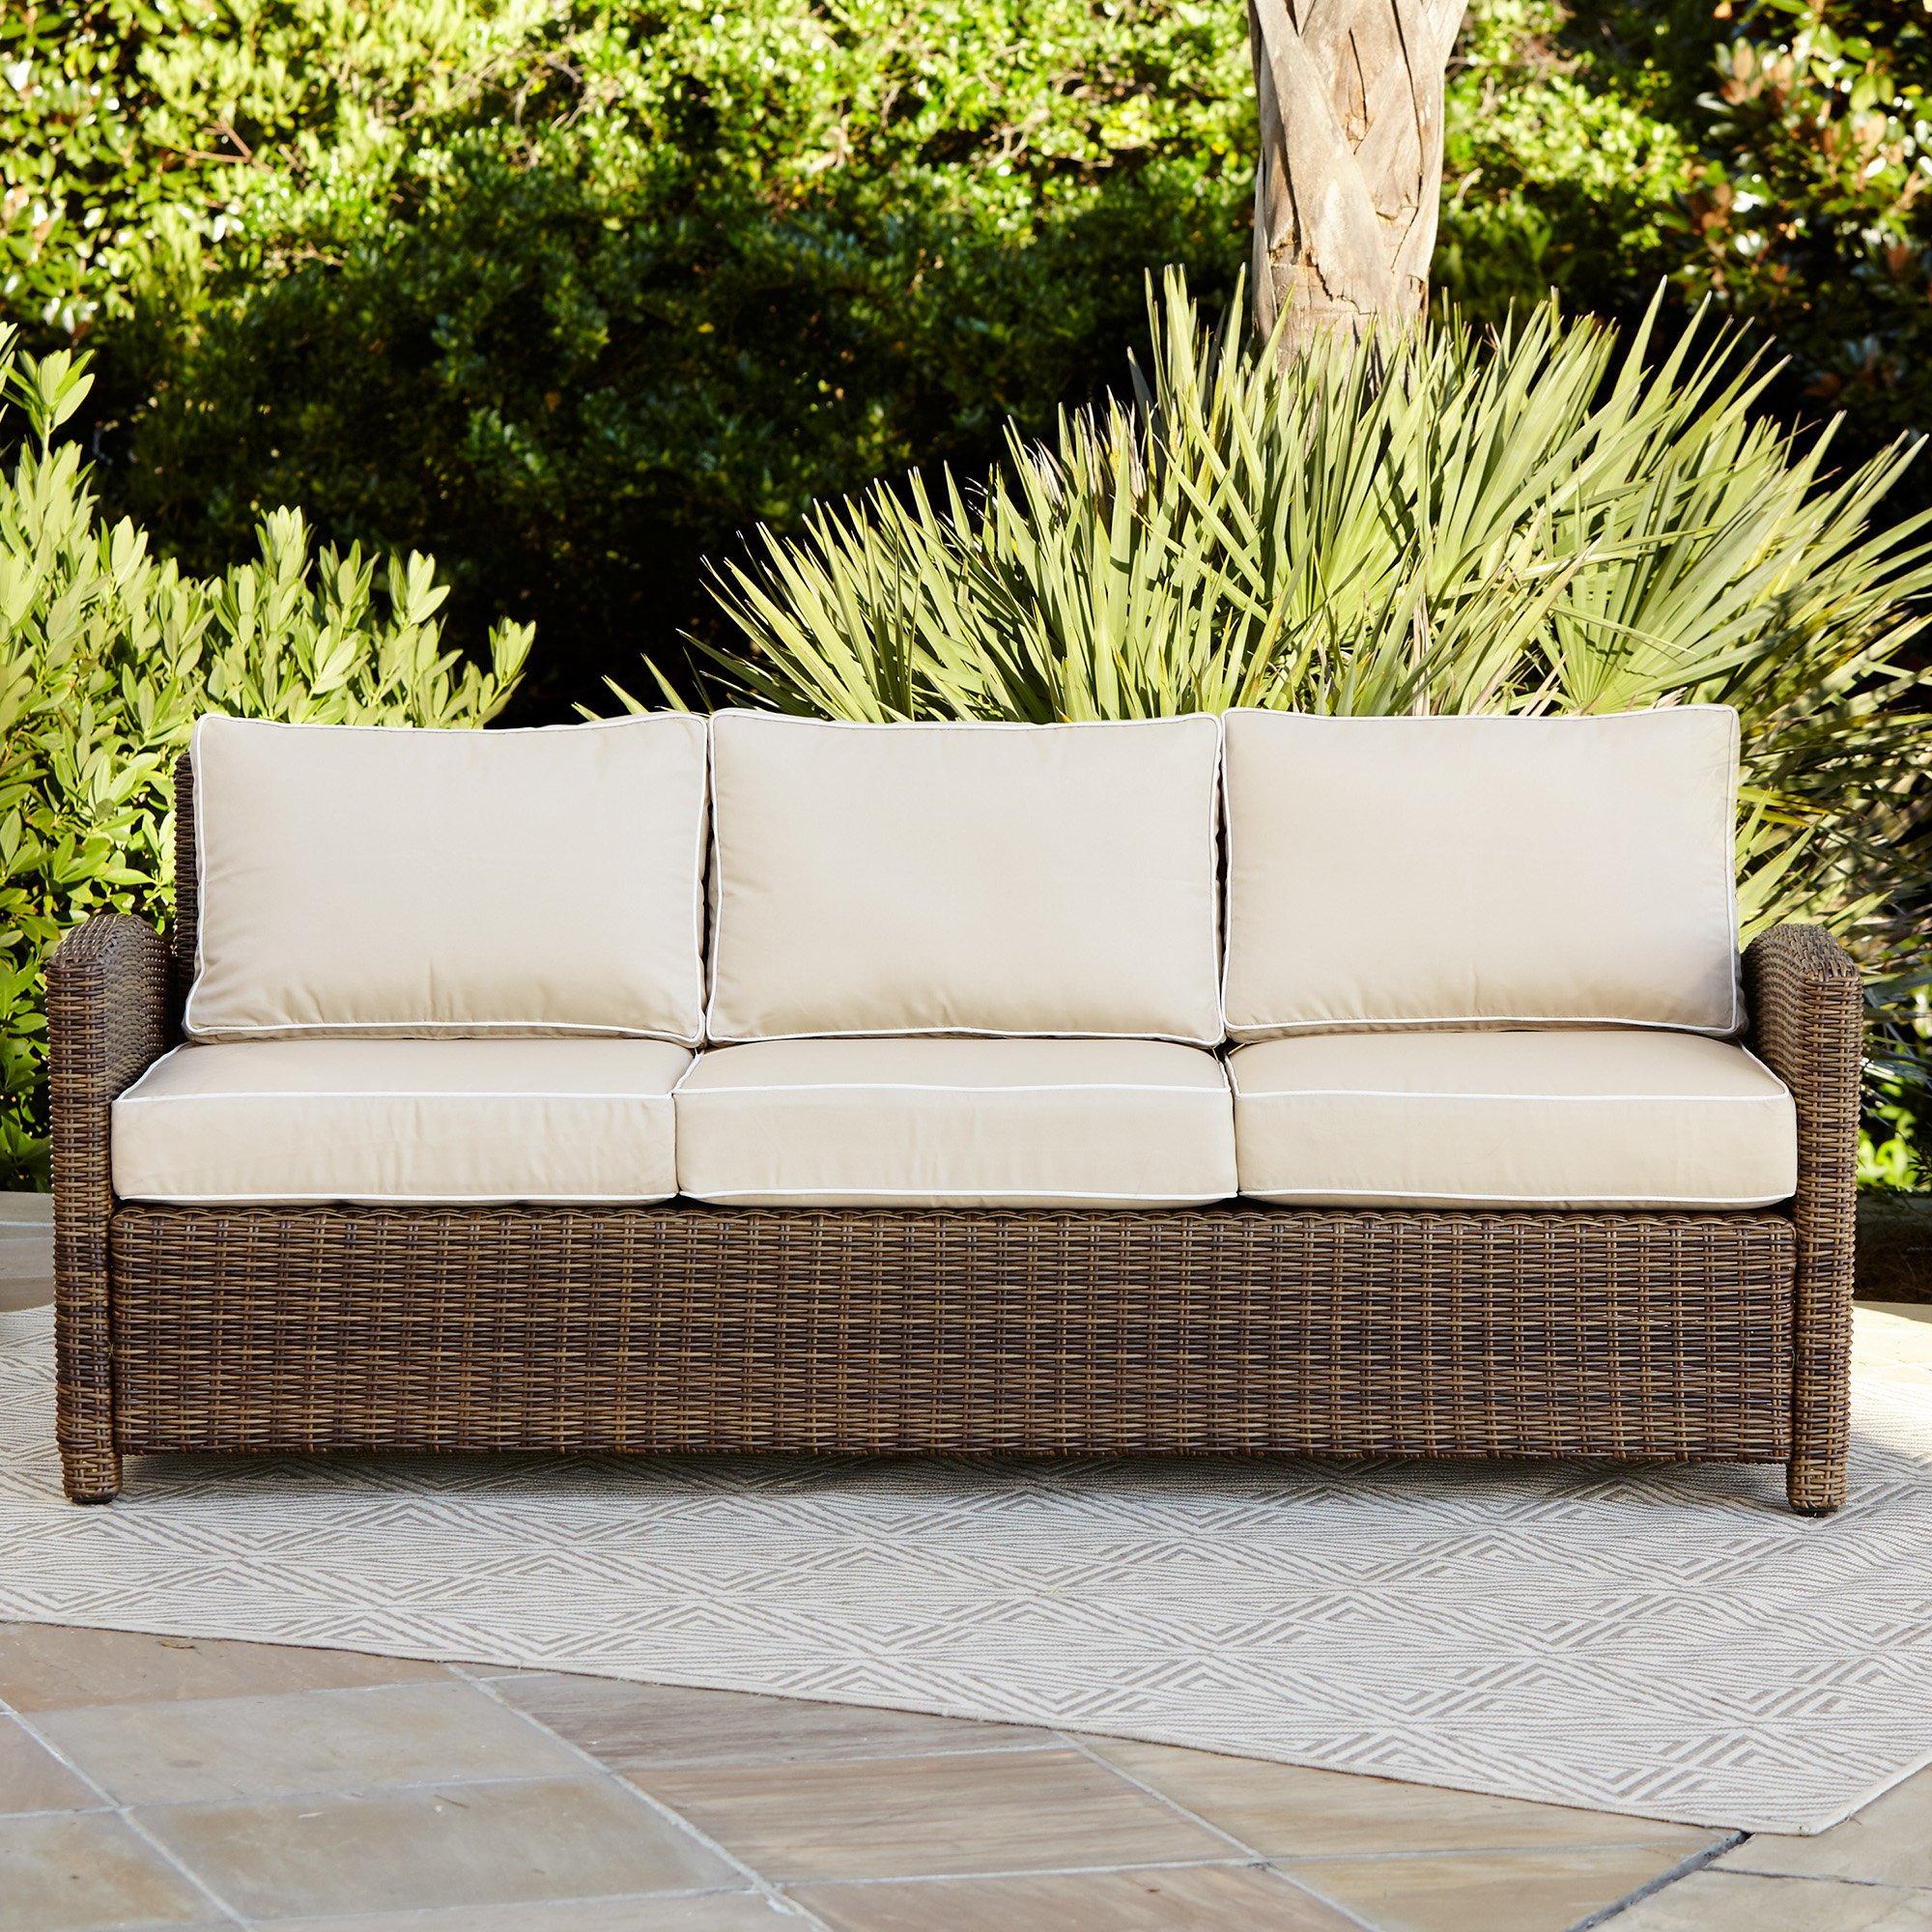 Belton Patio Sofas With Cushions Pertaining To 2020 Lawson Patio Sofa With Cushions (View 2 of 25)